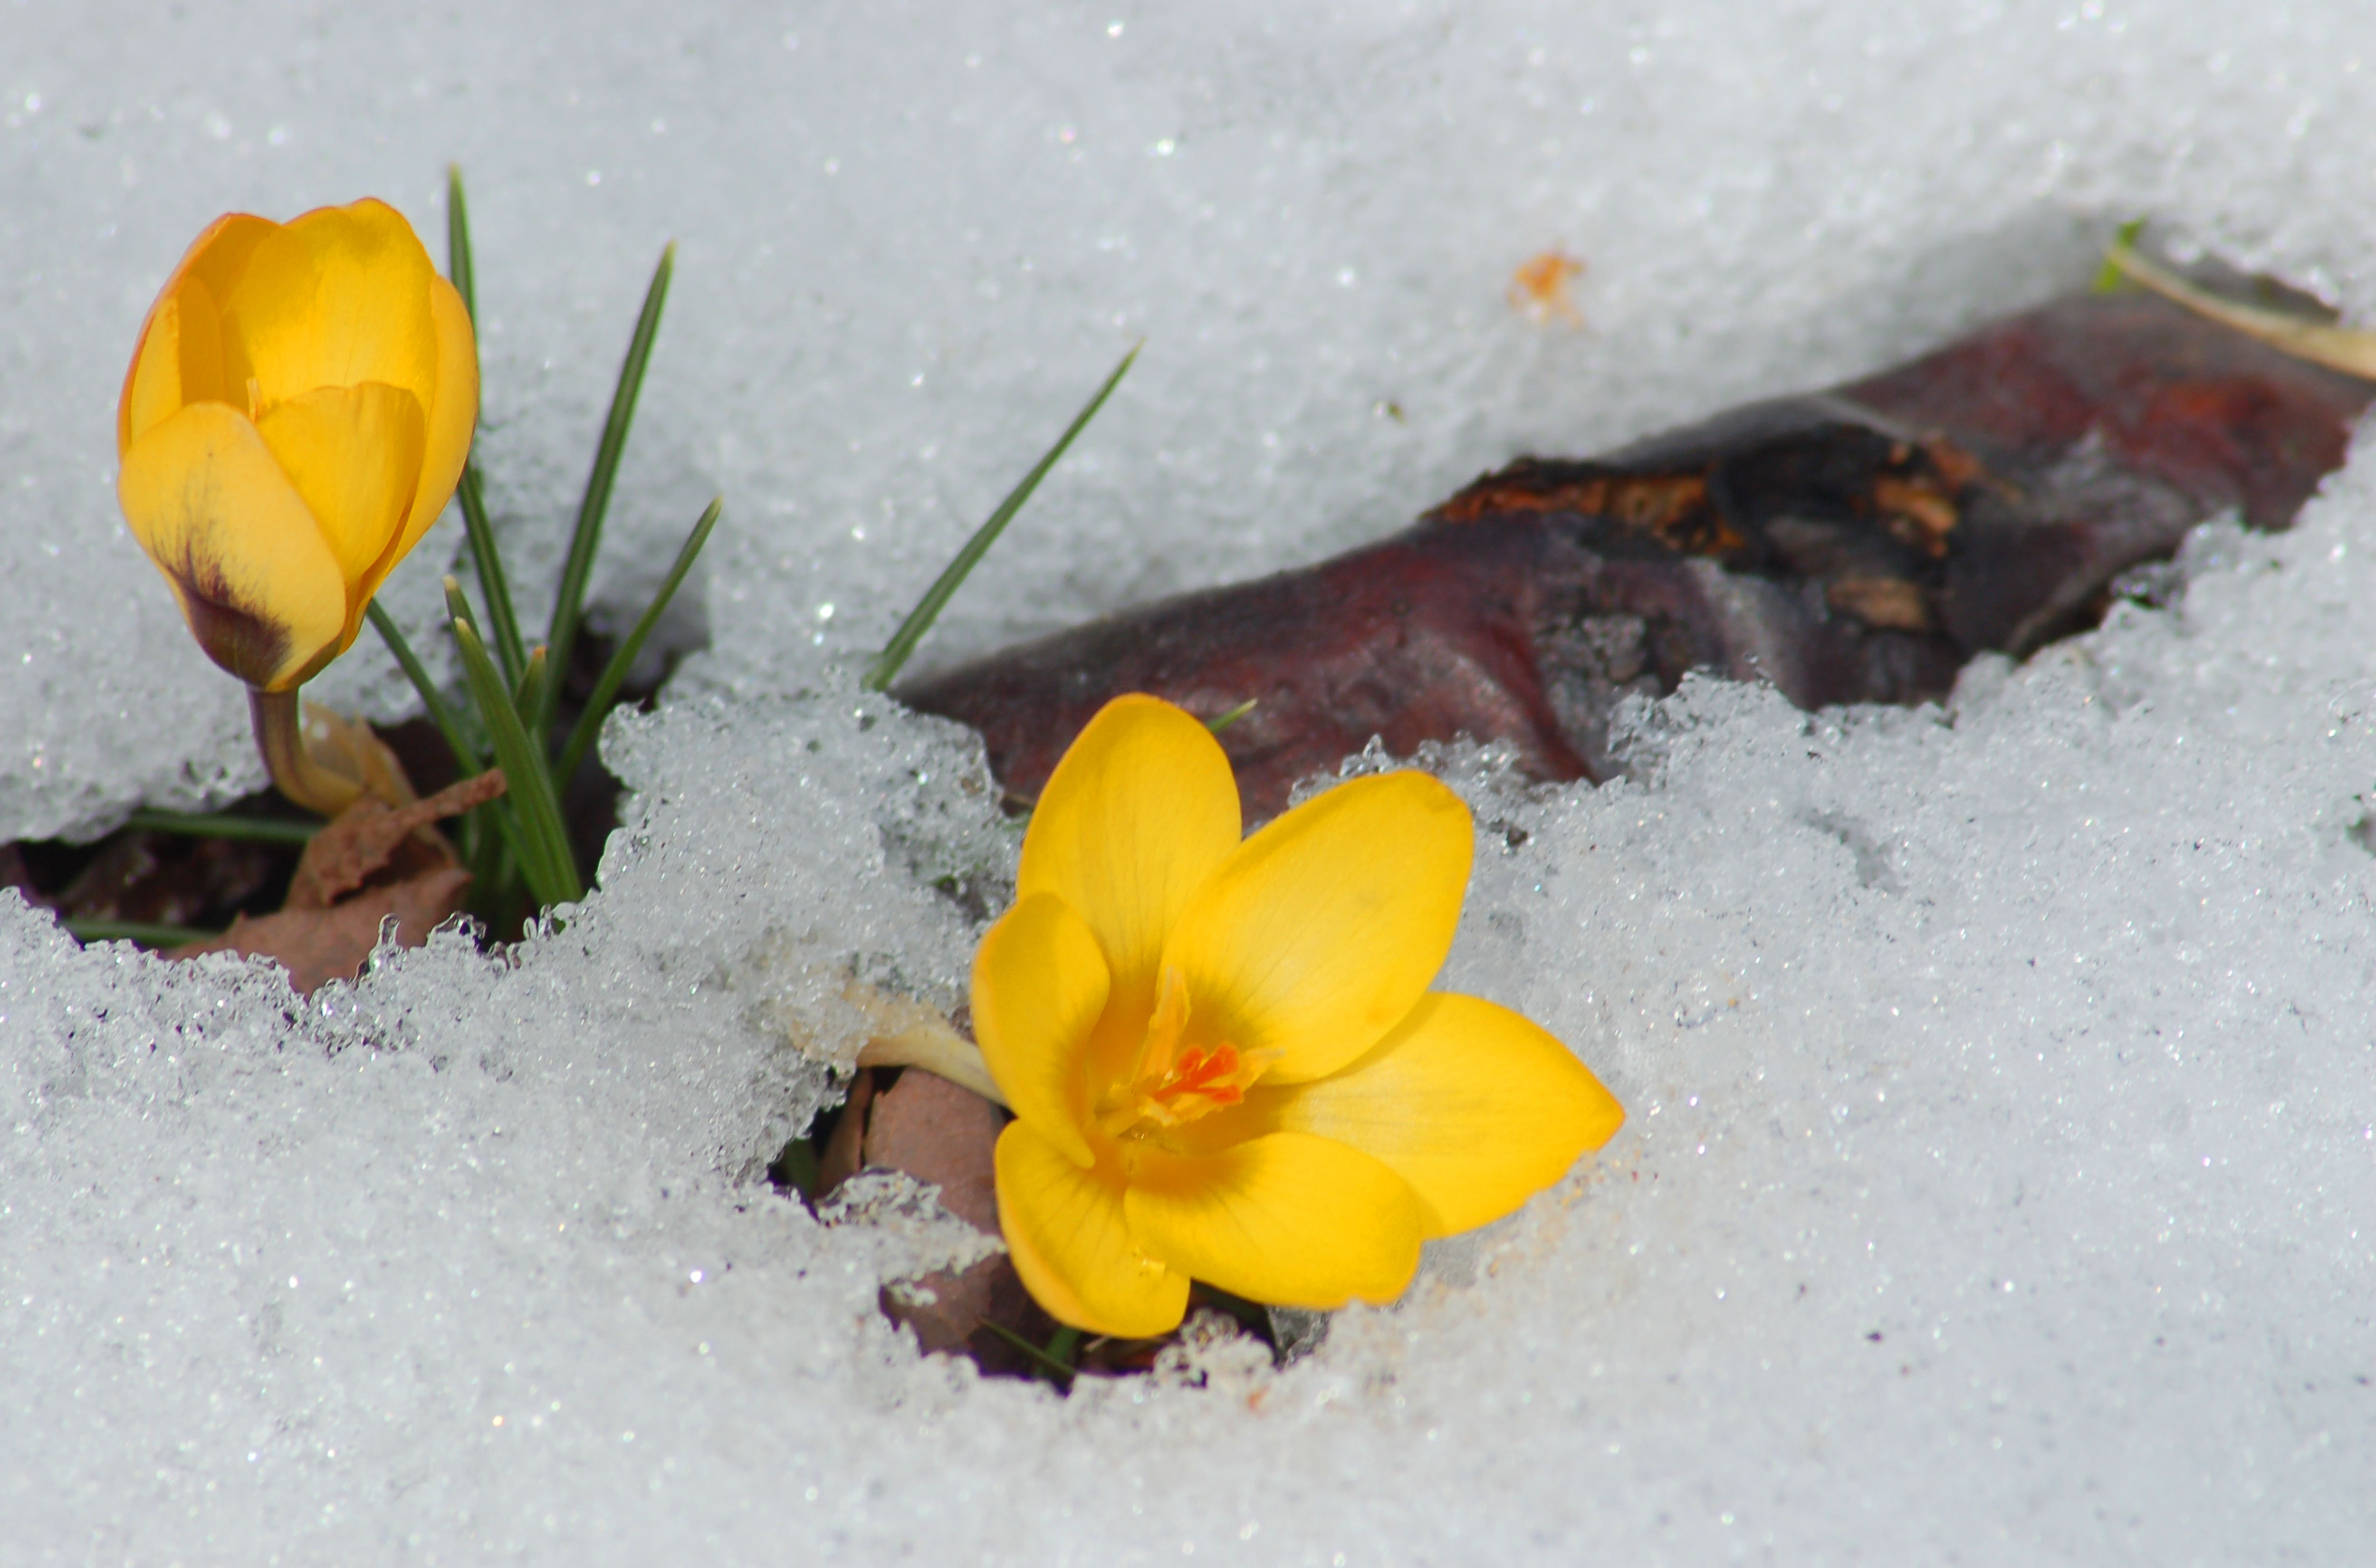 Crocus blooms in early spring, even if there's still snow.